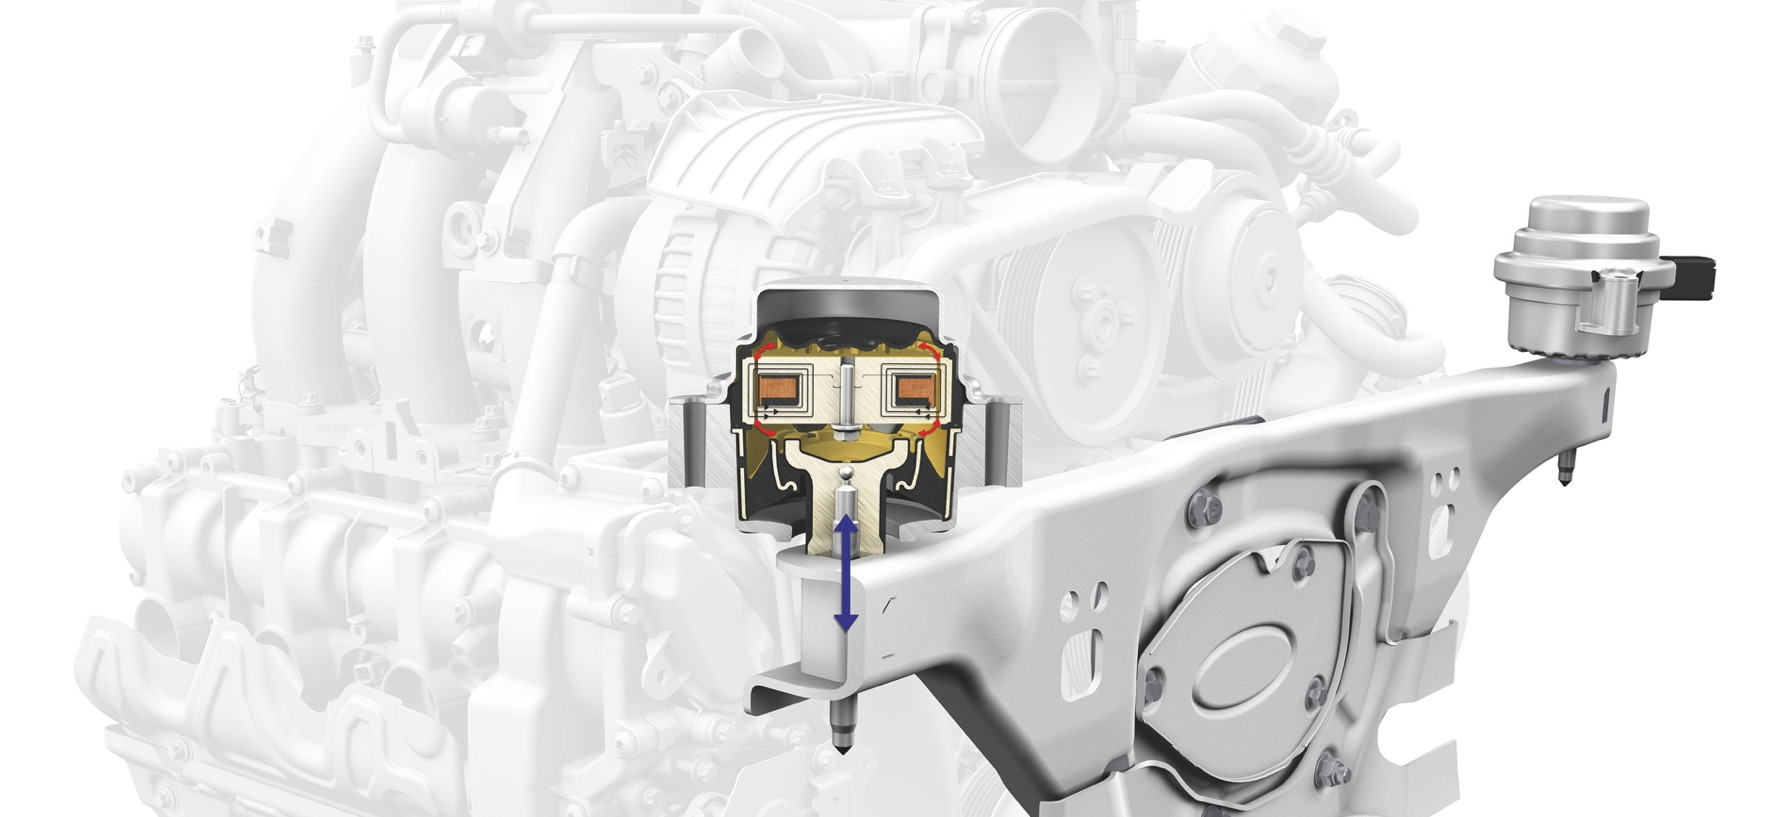 Engine Mounts - What They Do And Why You Should Replace Them ...